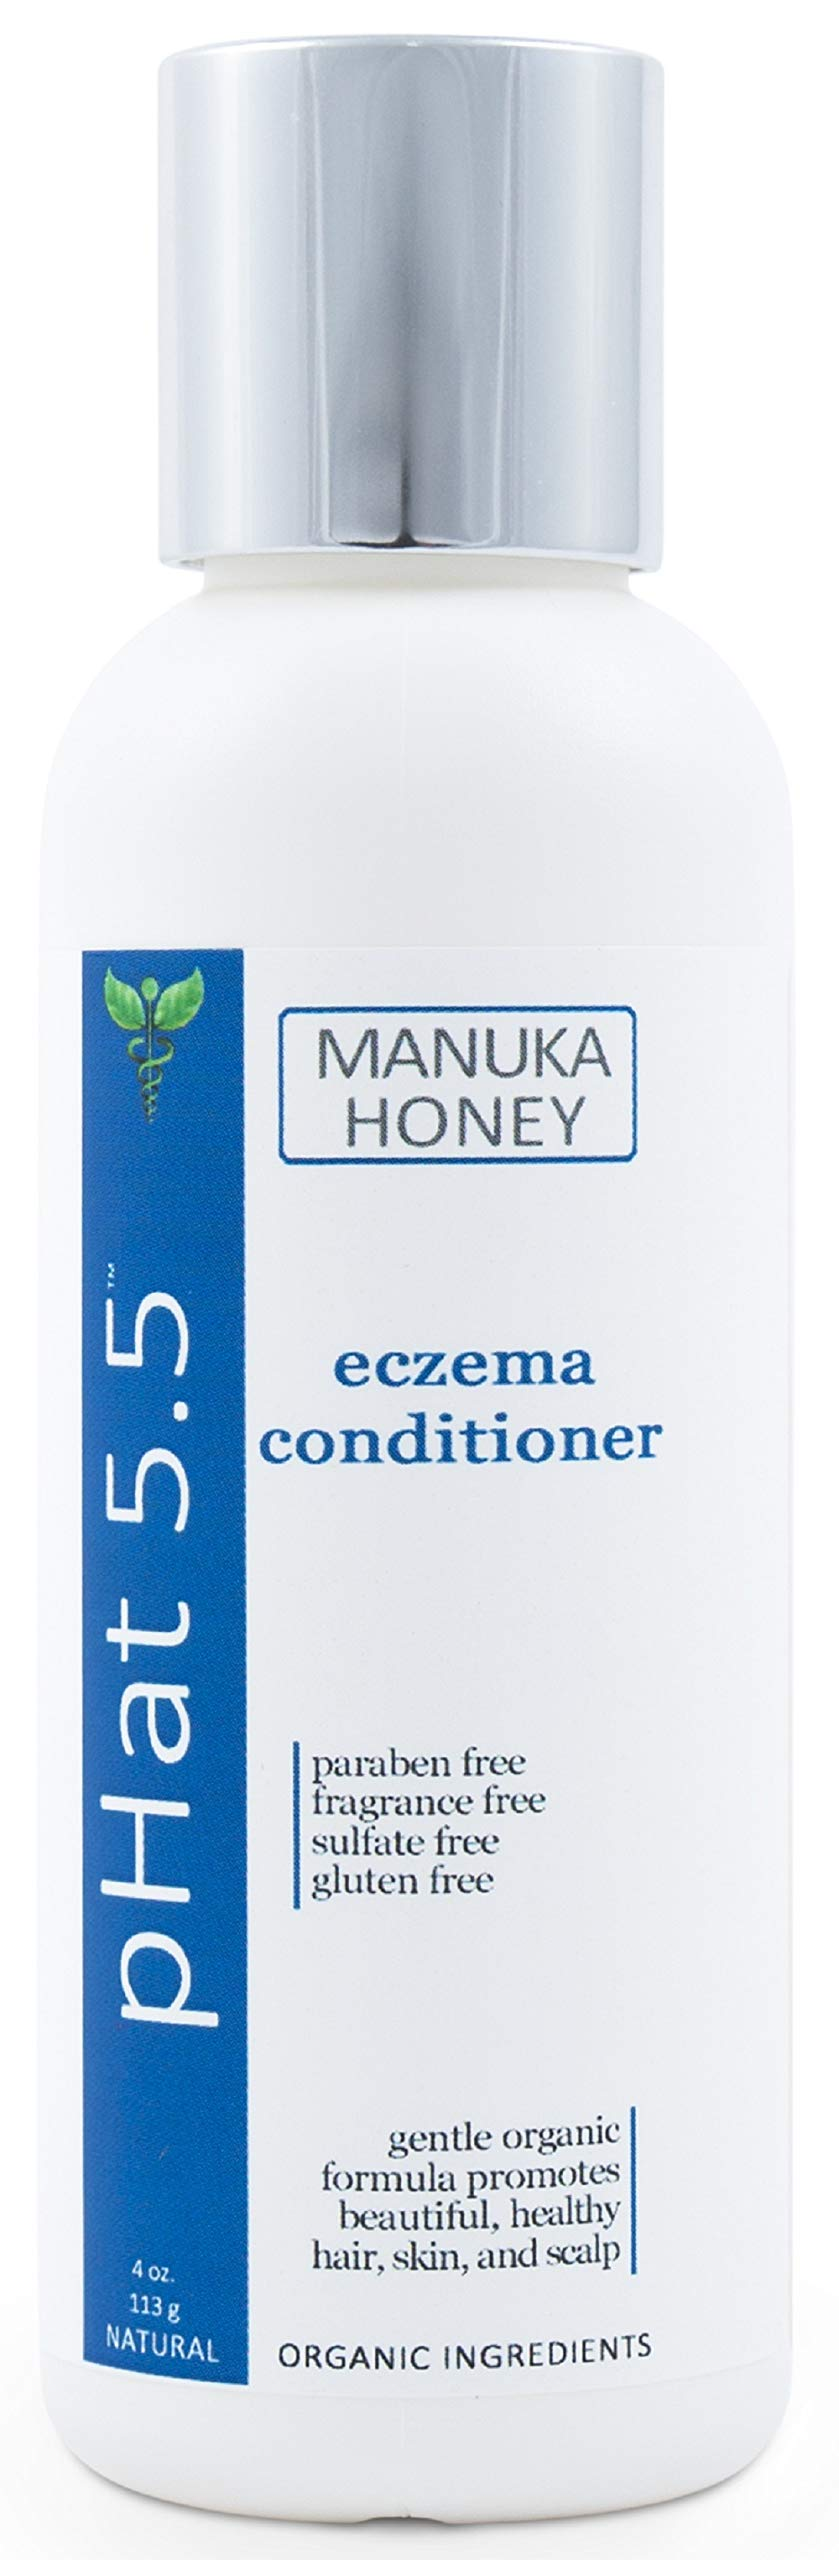 Organic Deep Conditioner Treatment for Eczema Relief - With Manuka Honey and Aloe Vera - Dry and Itchy Scalp & Dandruff Treatment - Sulfate and Paraben Free - Safe for Color Treated Hair (4 oz)